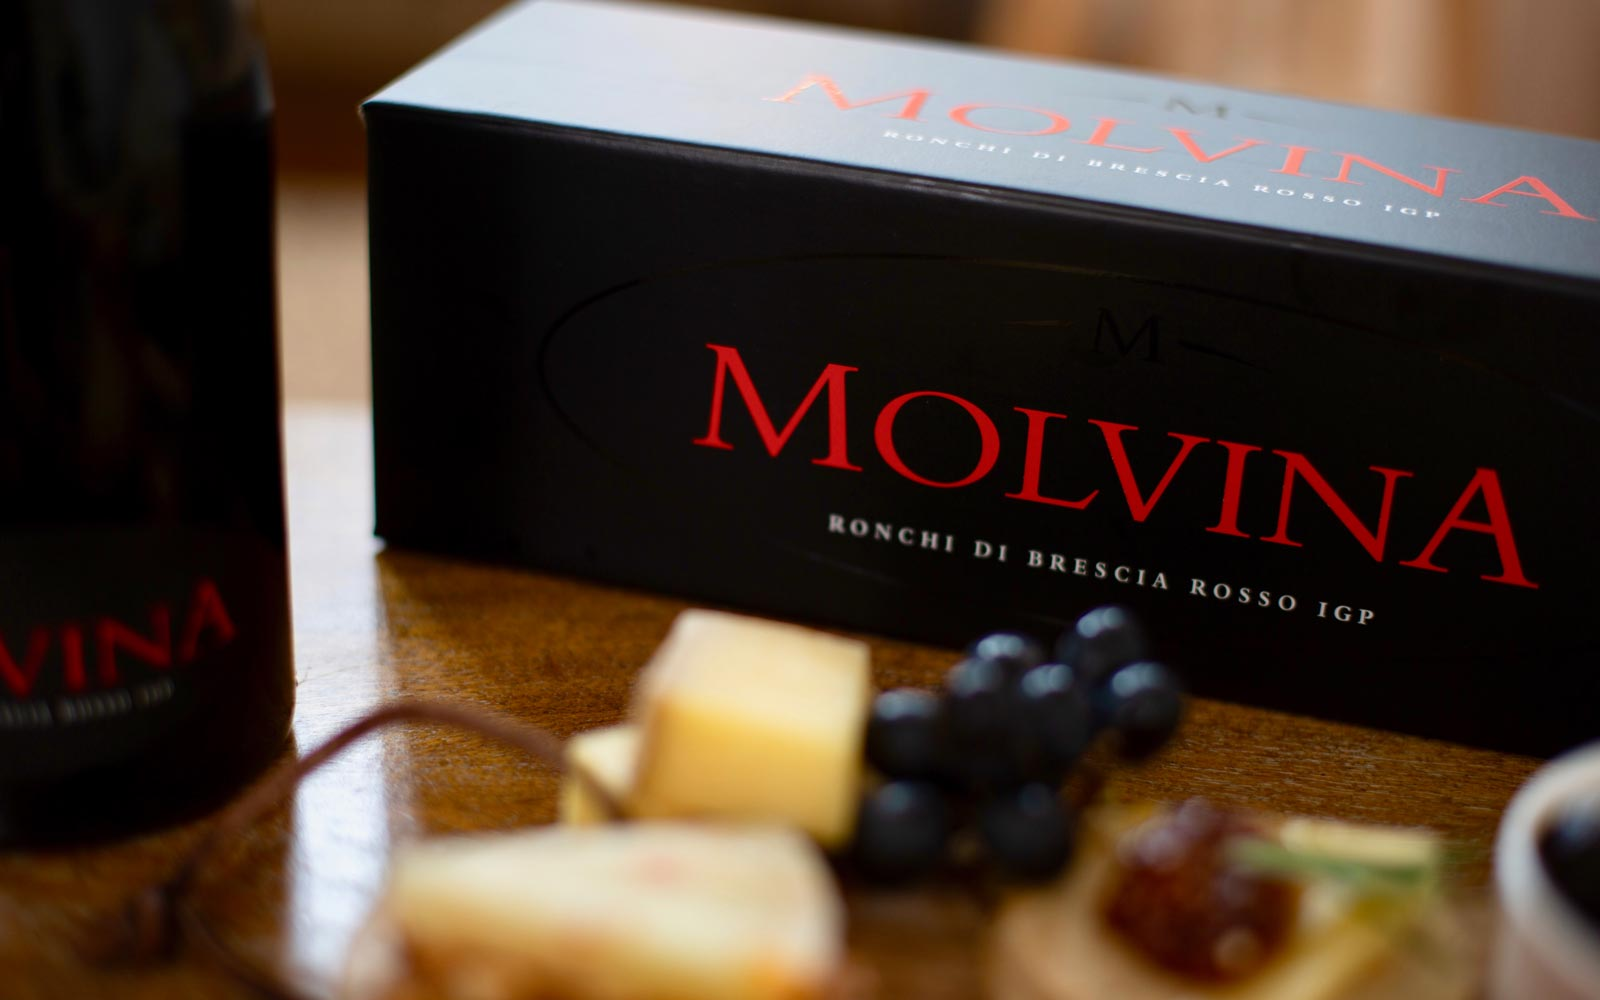 Molvina wines by Agrumia